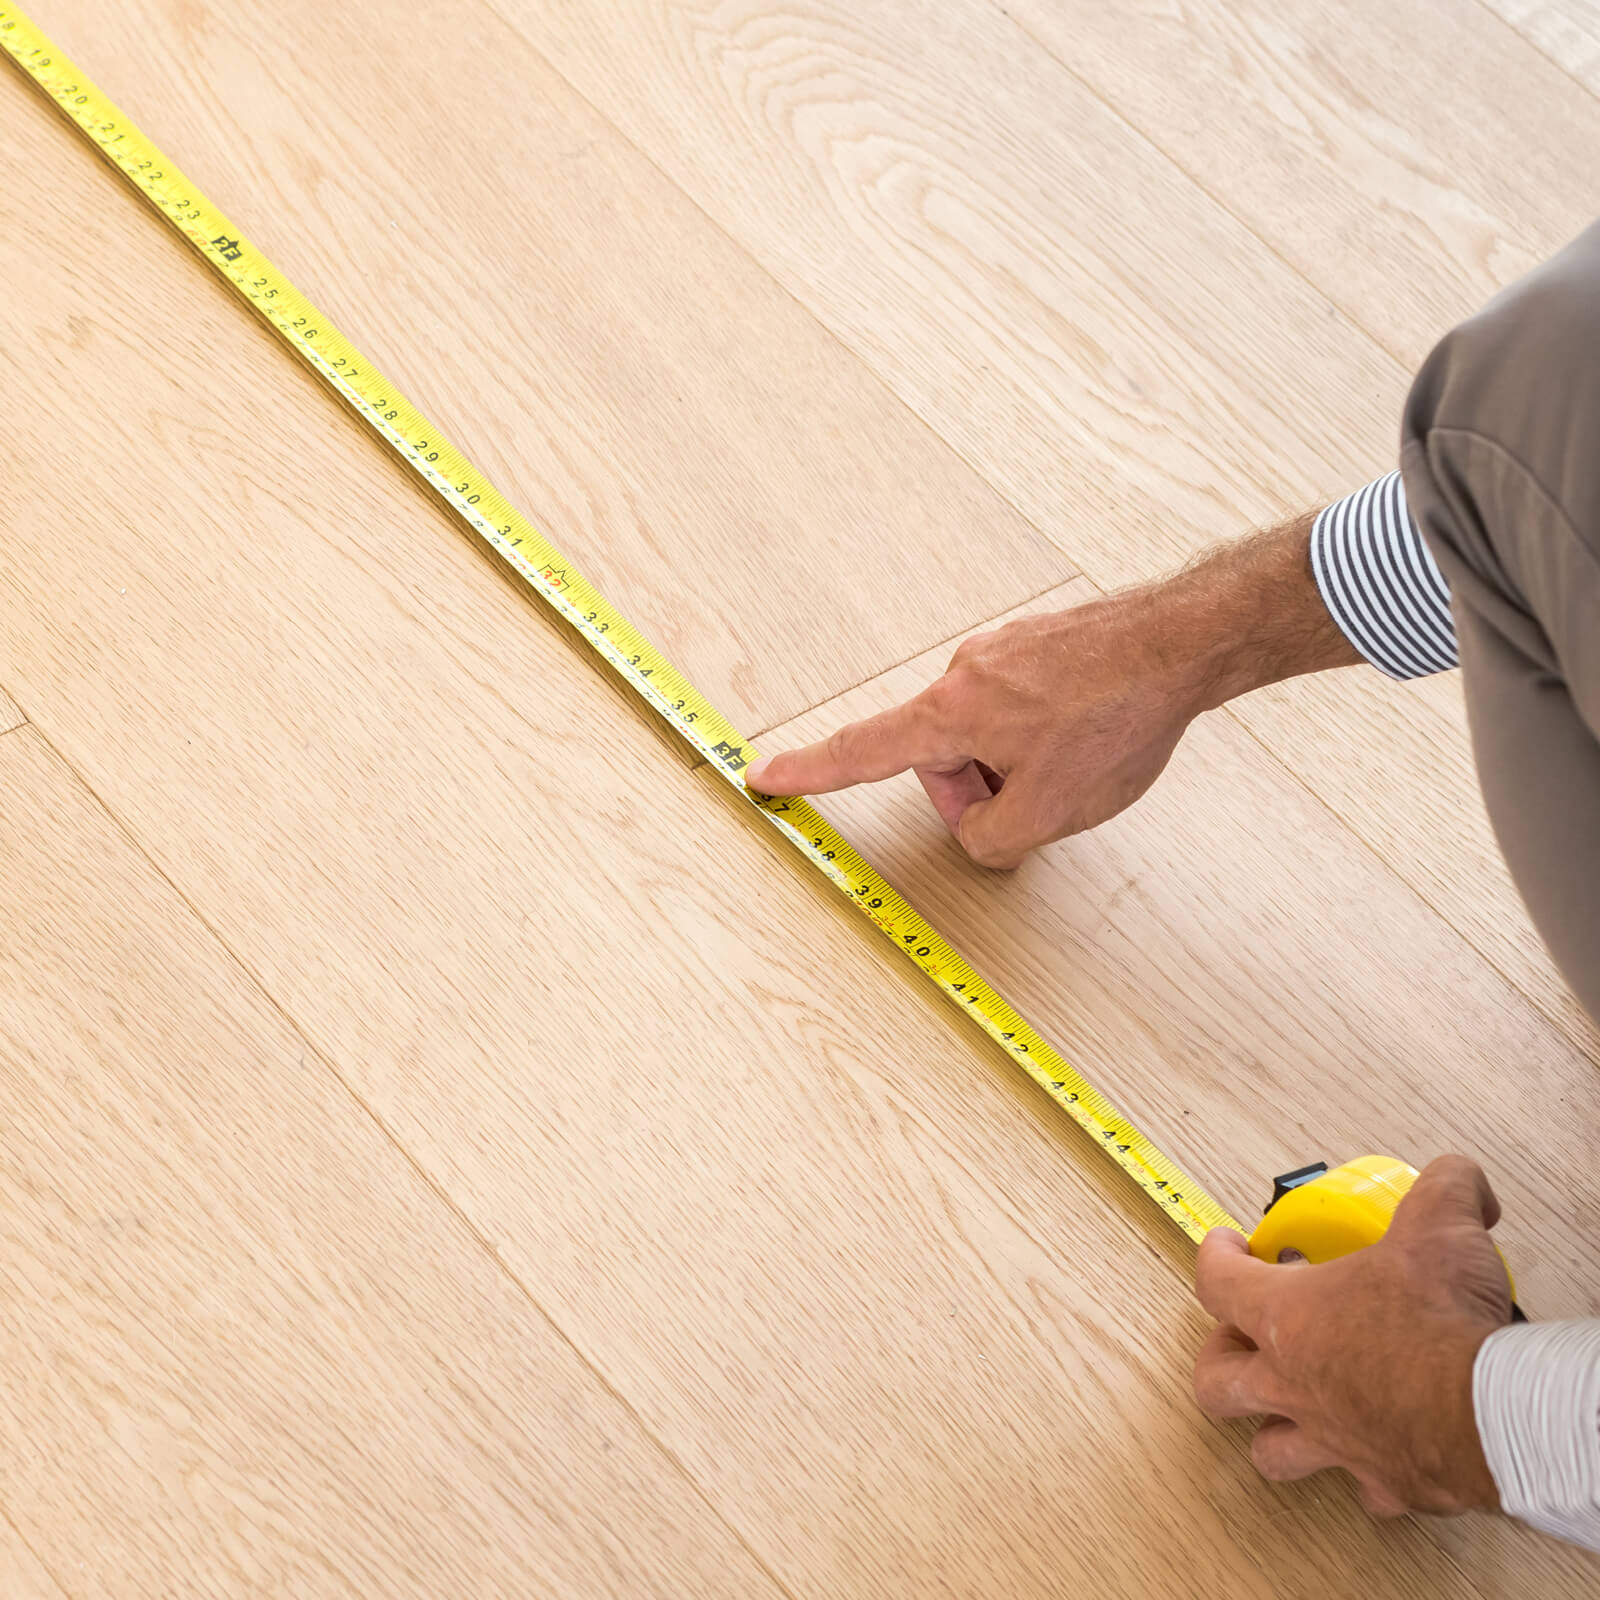 Measurement of flooring | Pilot Floor Covering